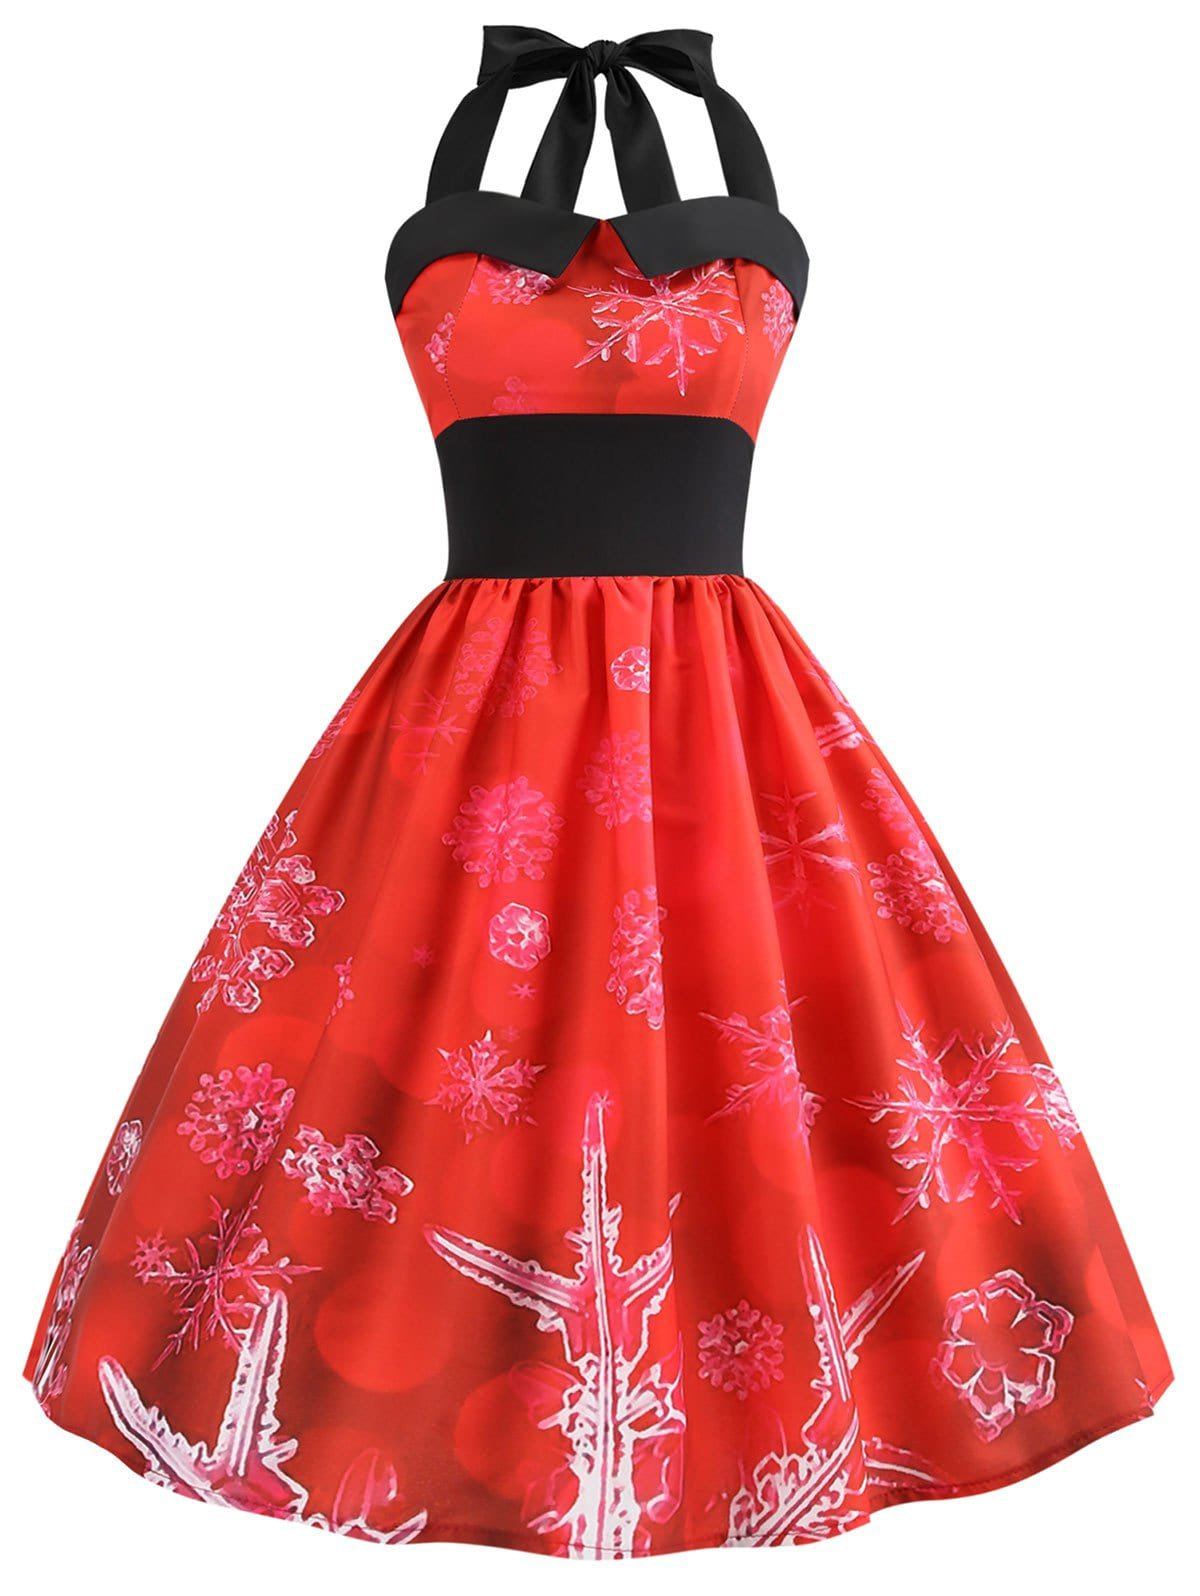 DressLily.com: Photo Gallery - Christmas Snowflake Print Halter Neck Dress